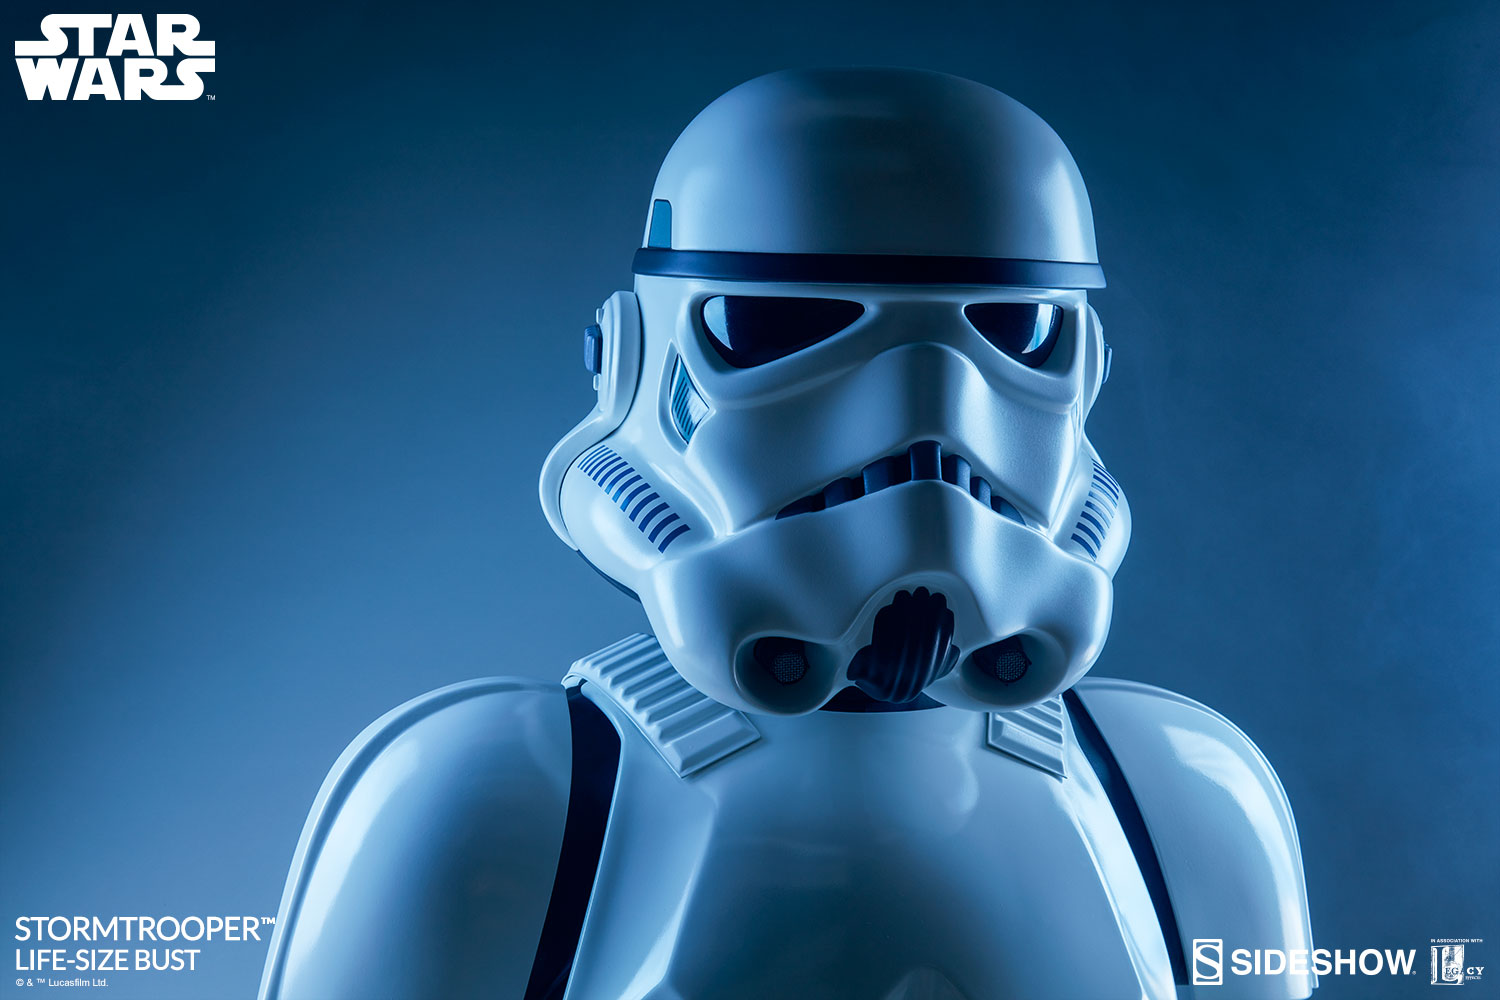 SW-Stormtrooper-life-size-bust-06